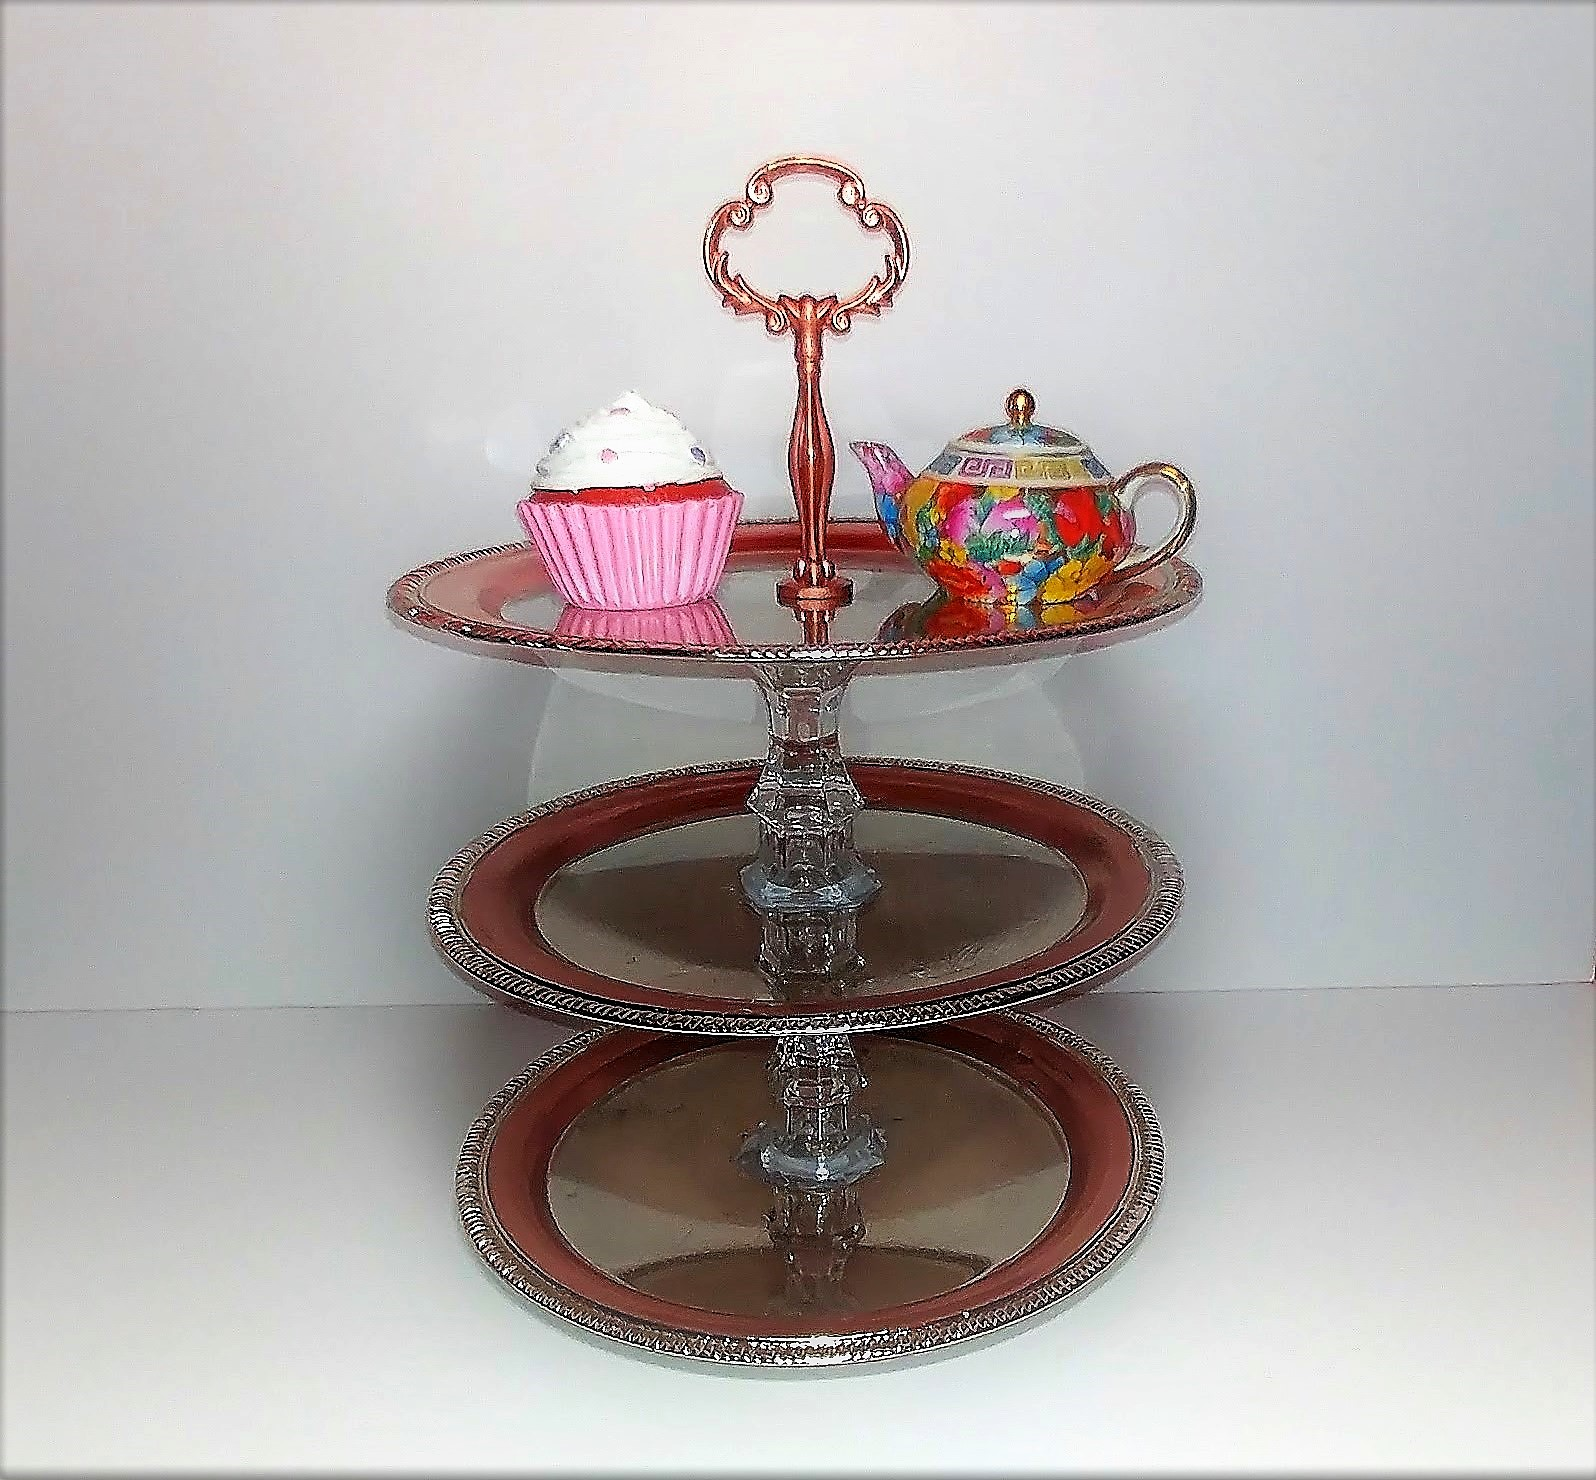 Three Tier Cupcake Stand – DIY Dollar Tree Crafts